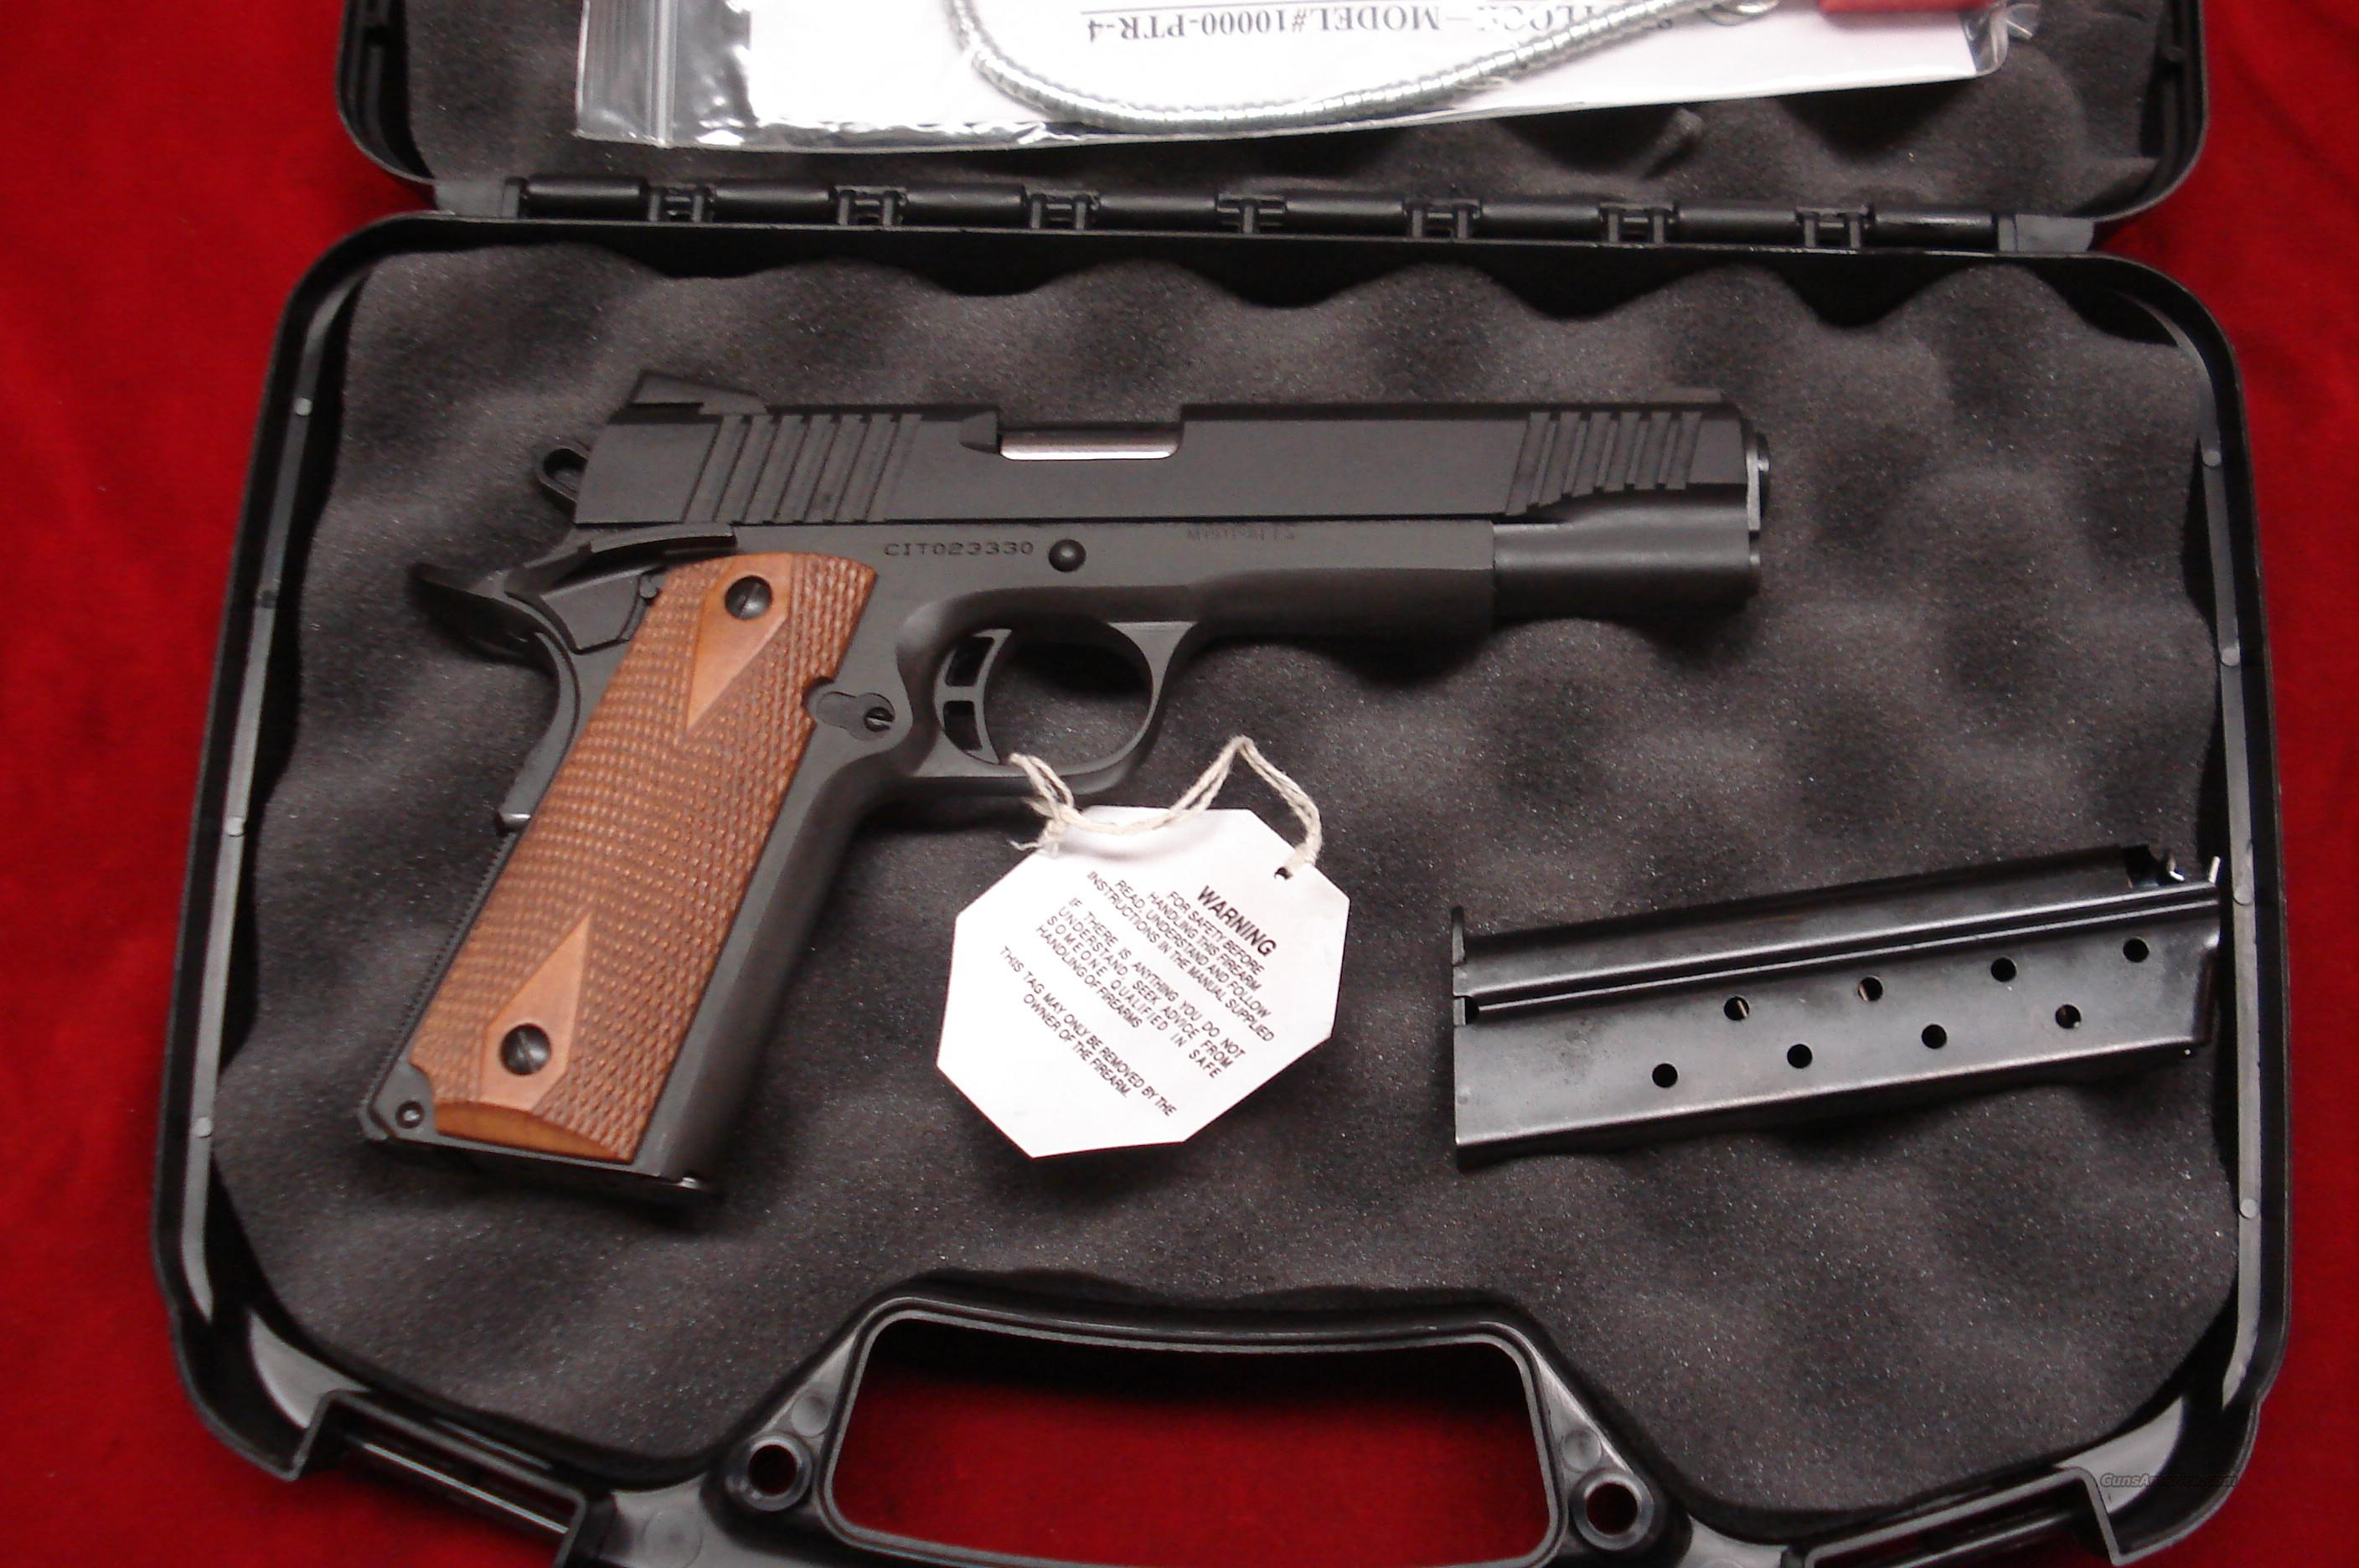 ARMSCOR PRECISION CITADEL TACTICAL 9MM PARKERIZED NEW  Guns > Pistols > 1911 Pistol Copies (non-Colt)